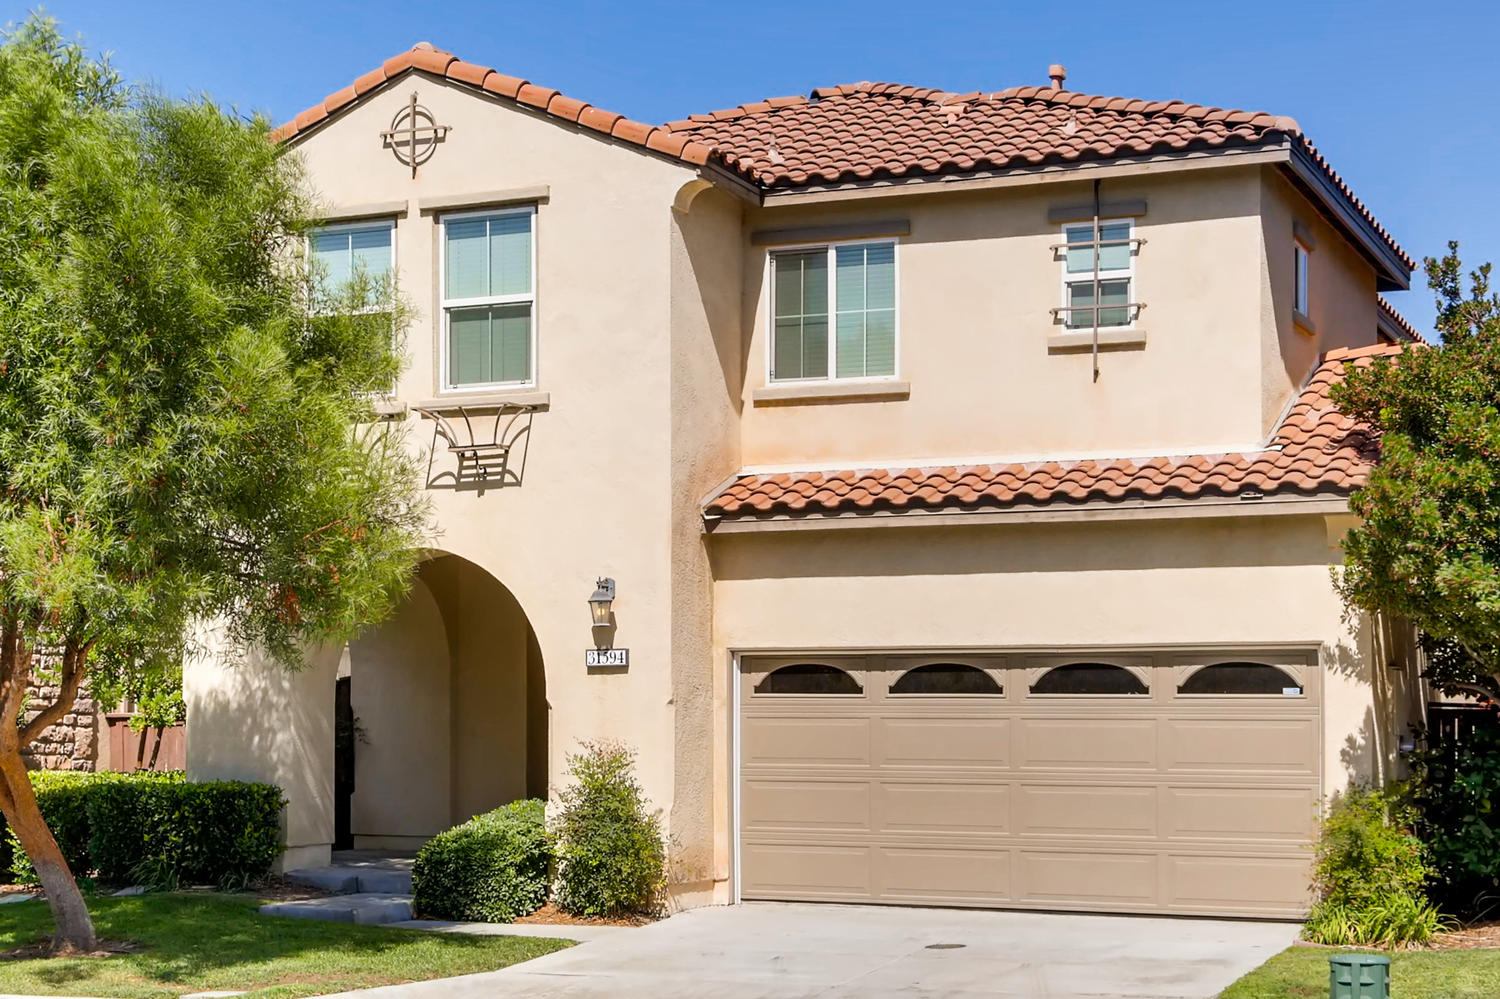 Photo of 31594 Six Rivers Court, Temecula, CA, 92592